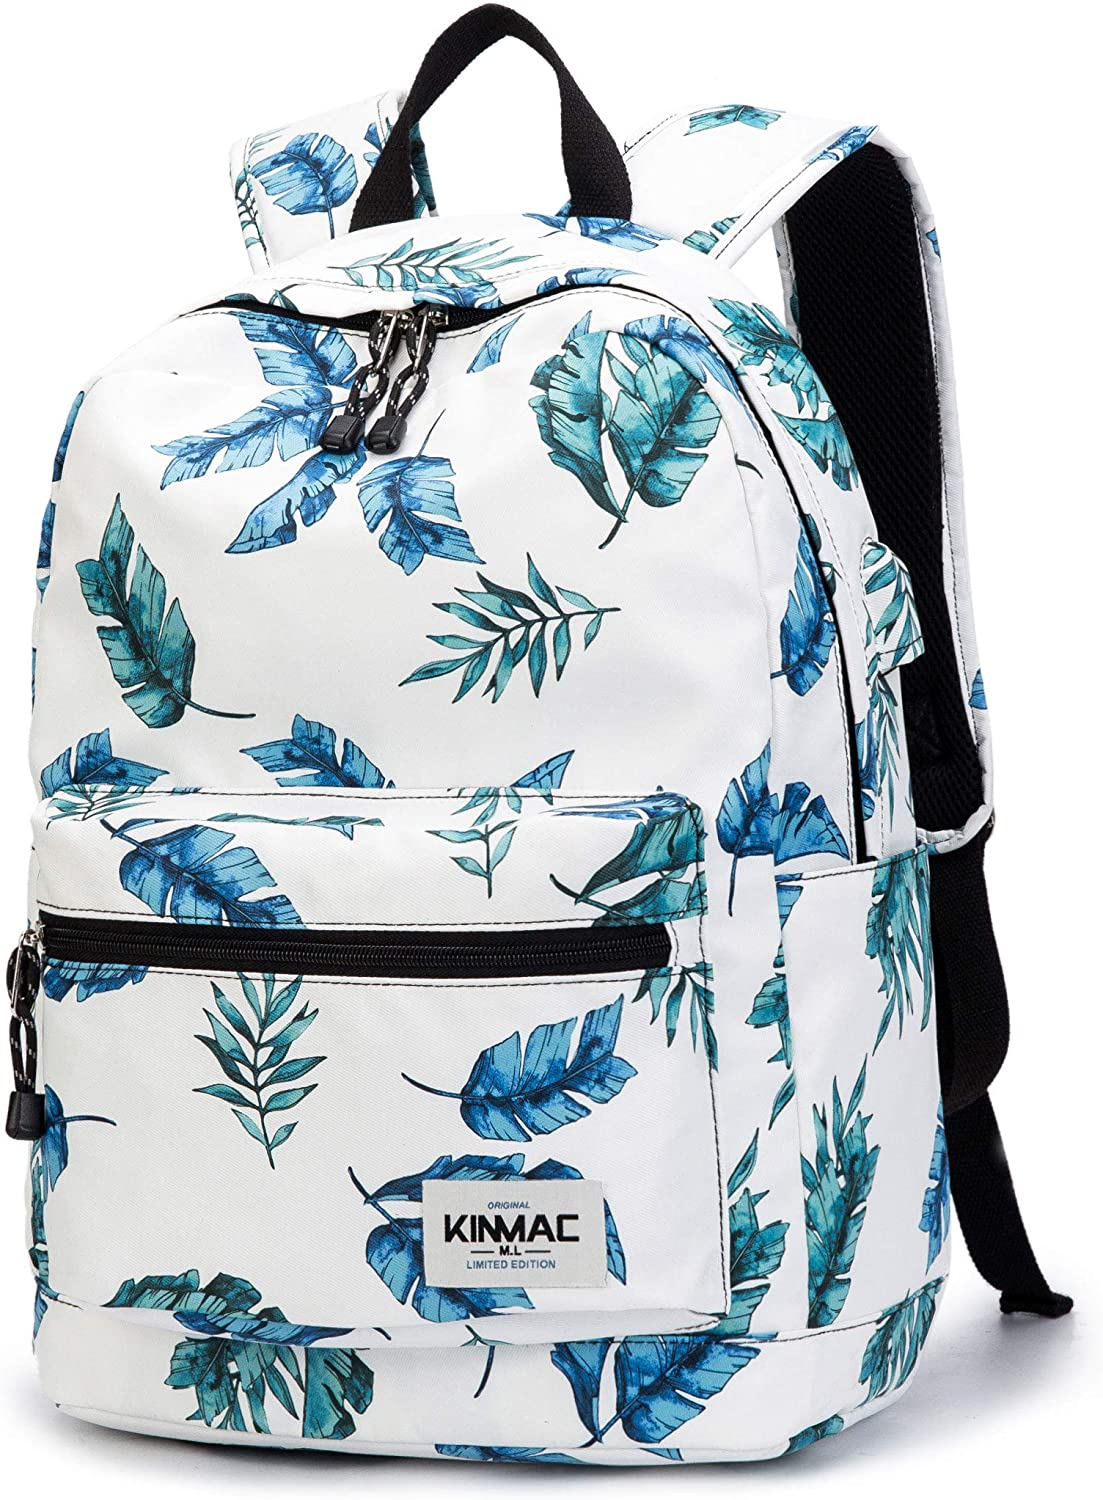 Kinmac Waterproof Laptop Travel Outdoor Backpack with USB Charging Port for 13 inch 14 inch and 15.6 inch Laptop (Banana Leaf)